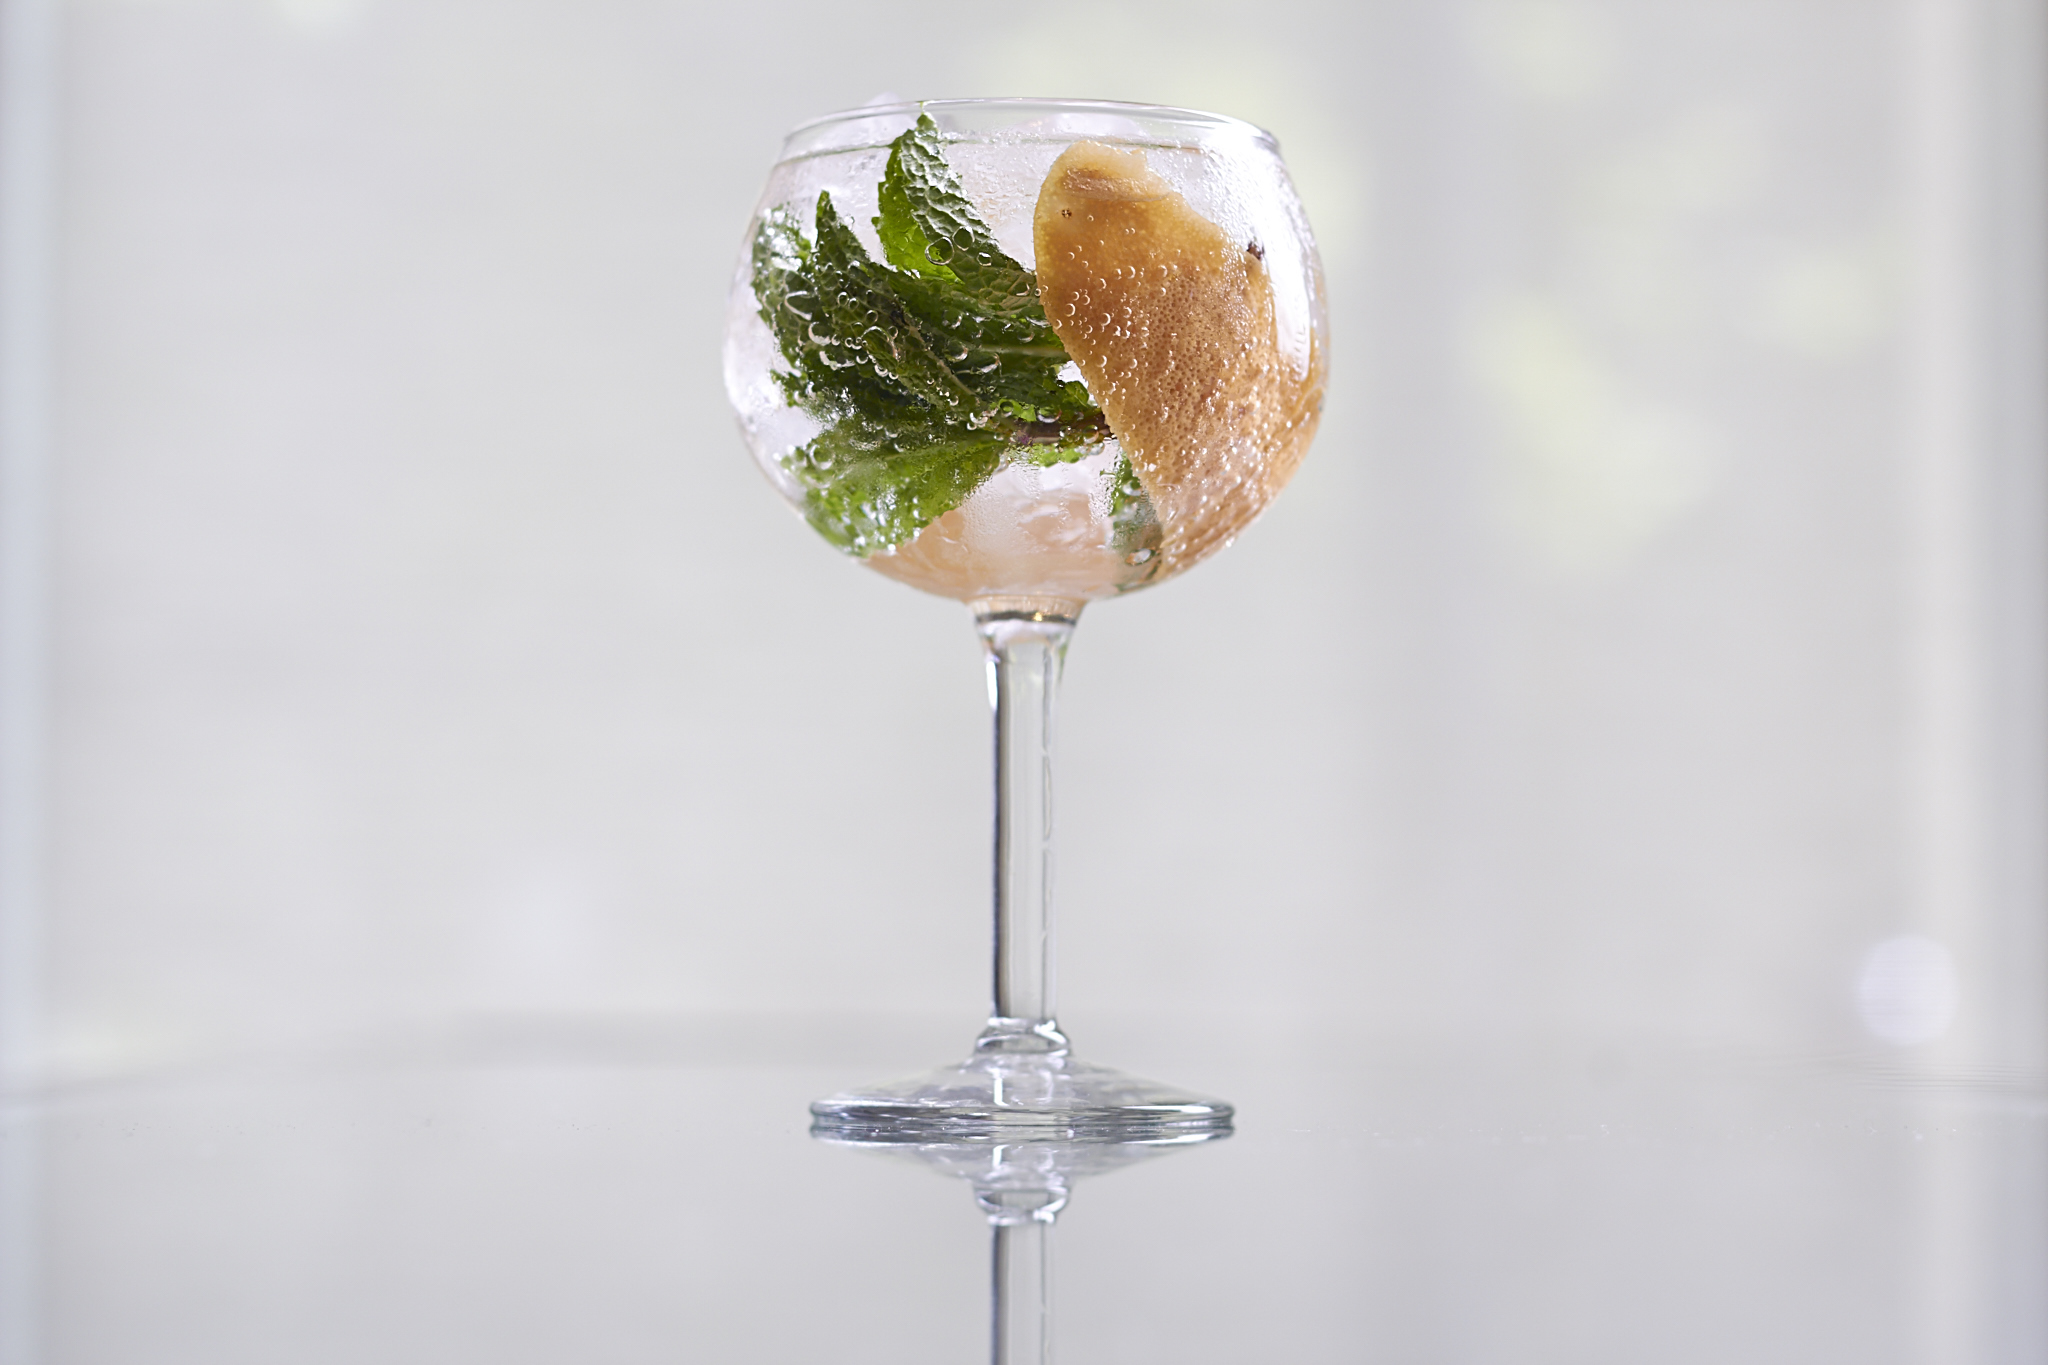 Grapefruit & Mint Gintonic at Sable Kitchen & Bar